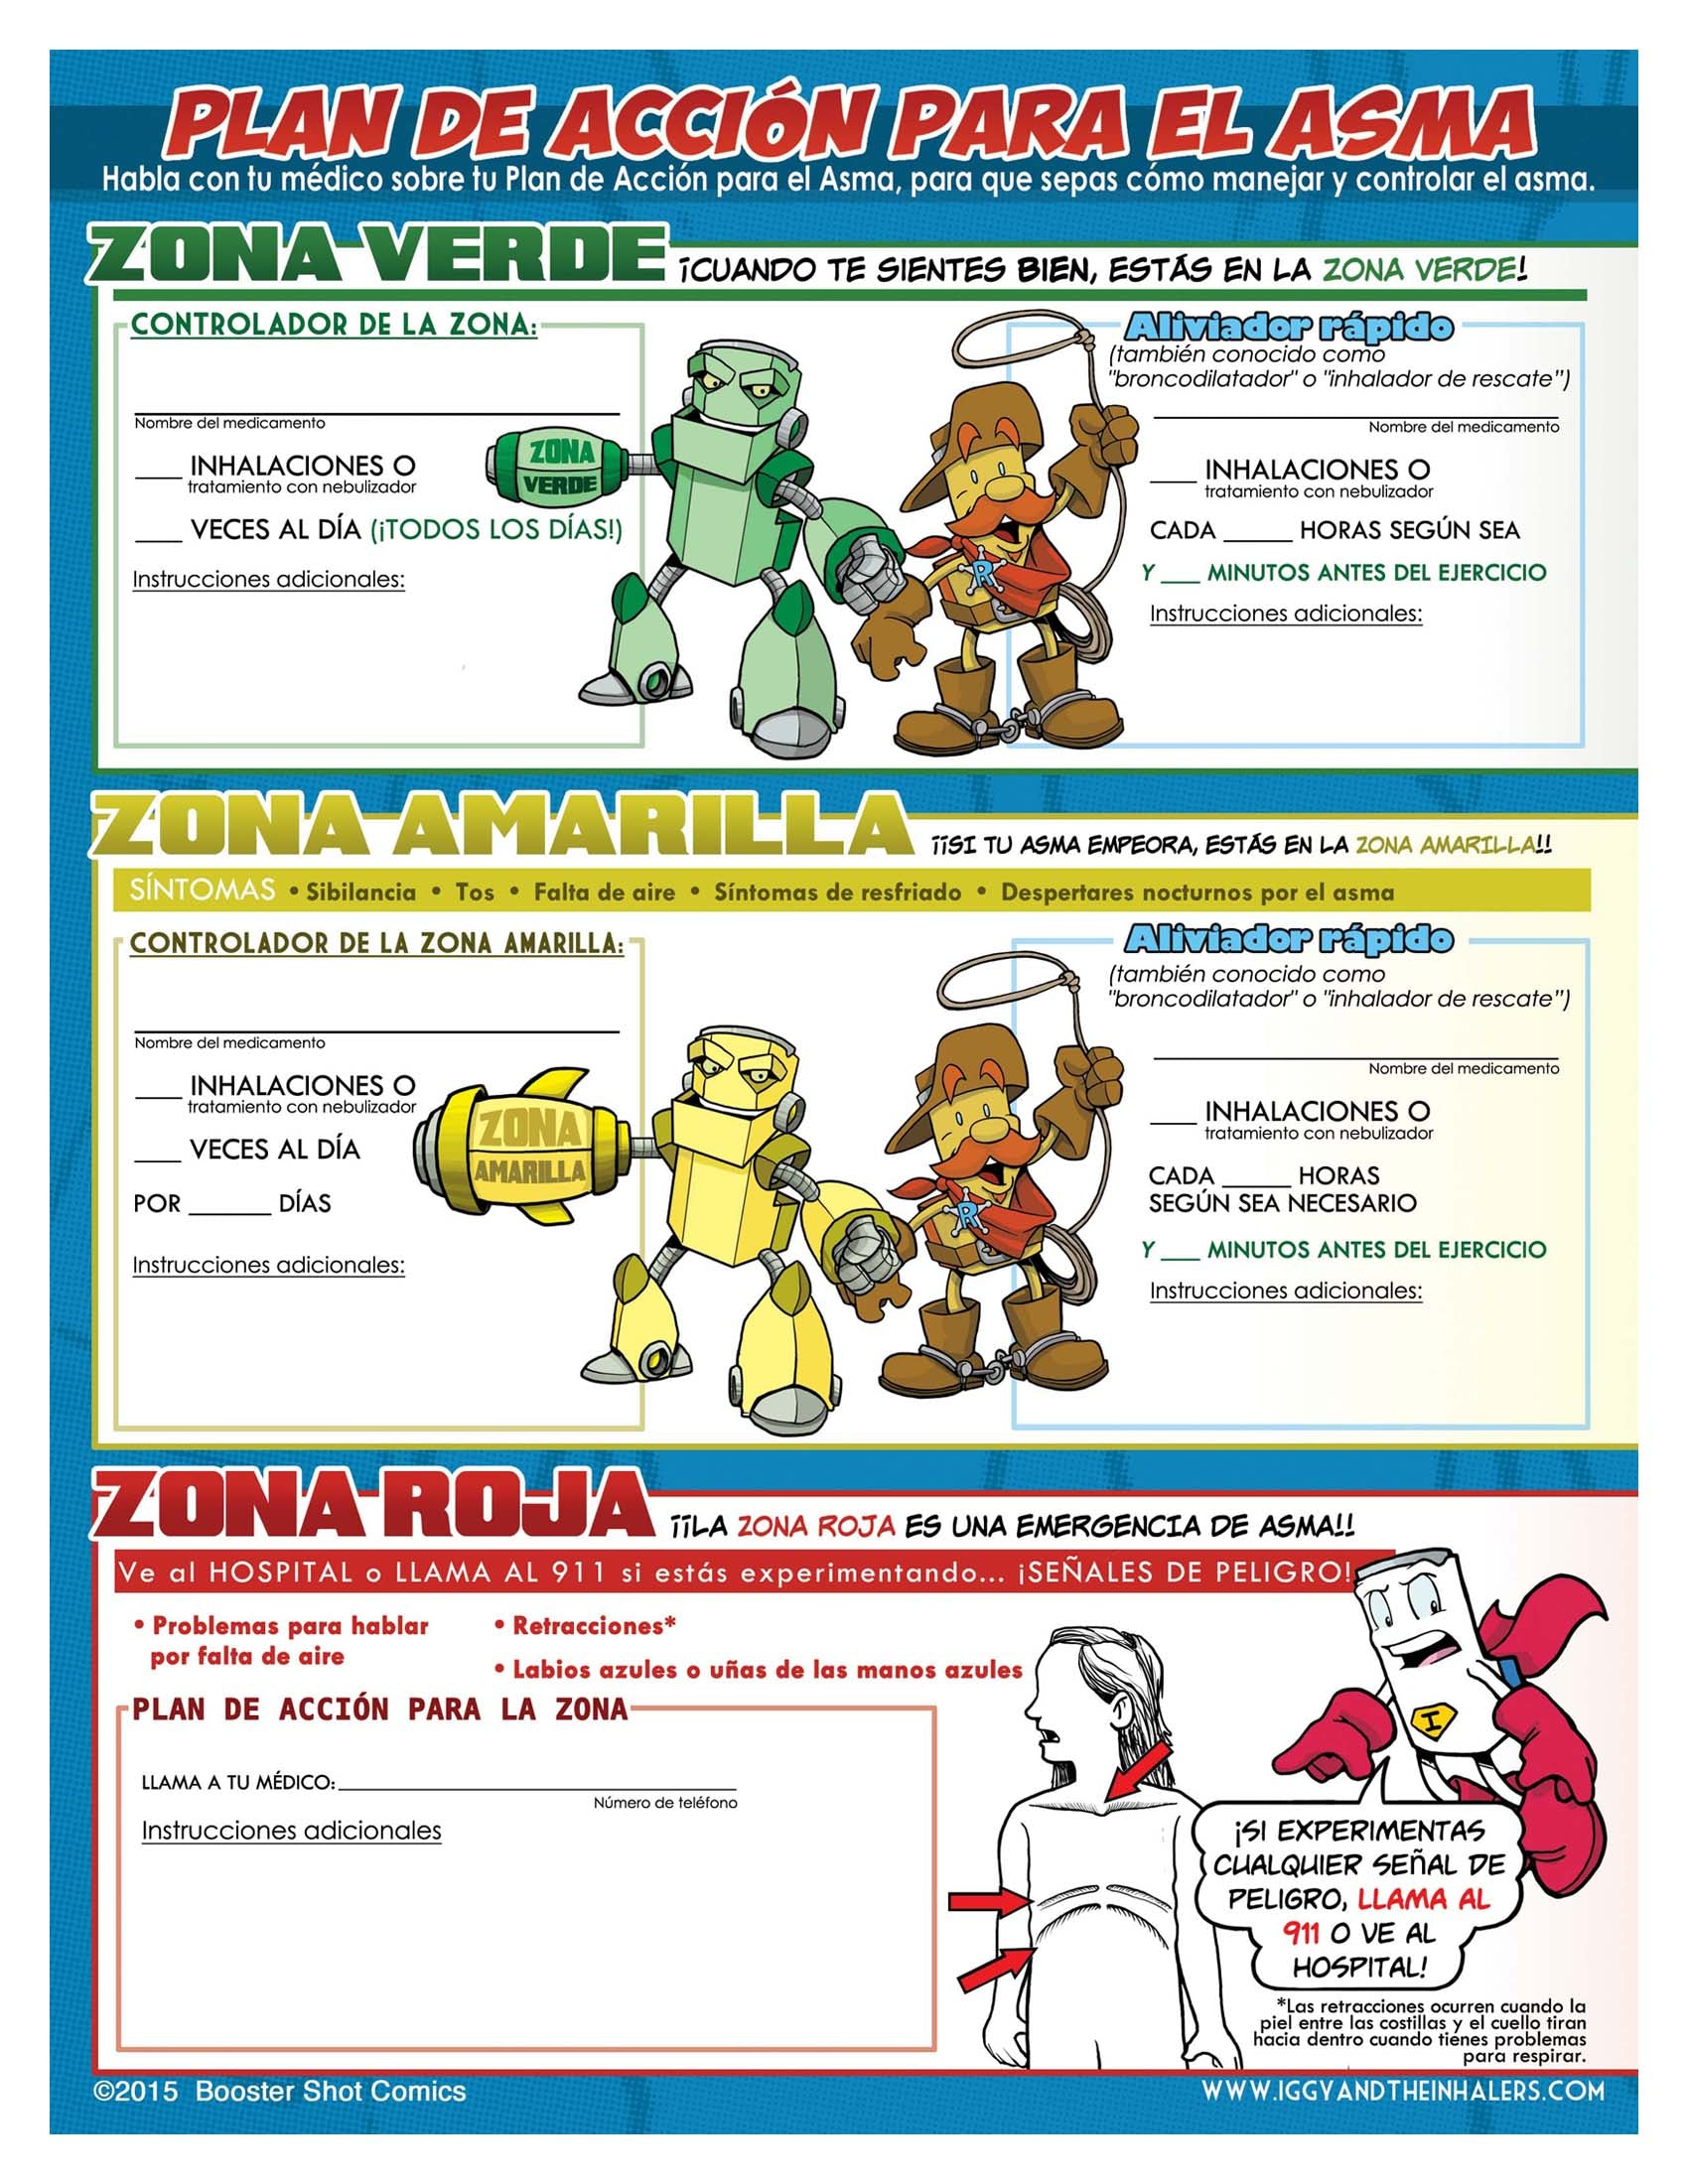 Clinic Resources Spanish Iggy And The Inhalers